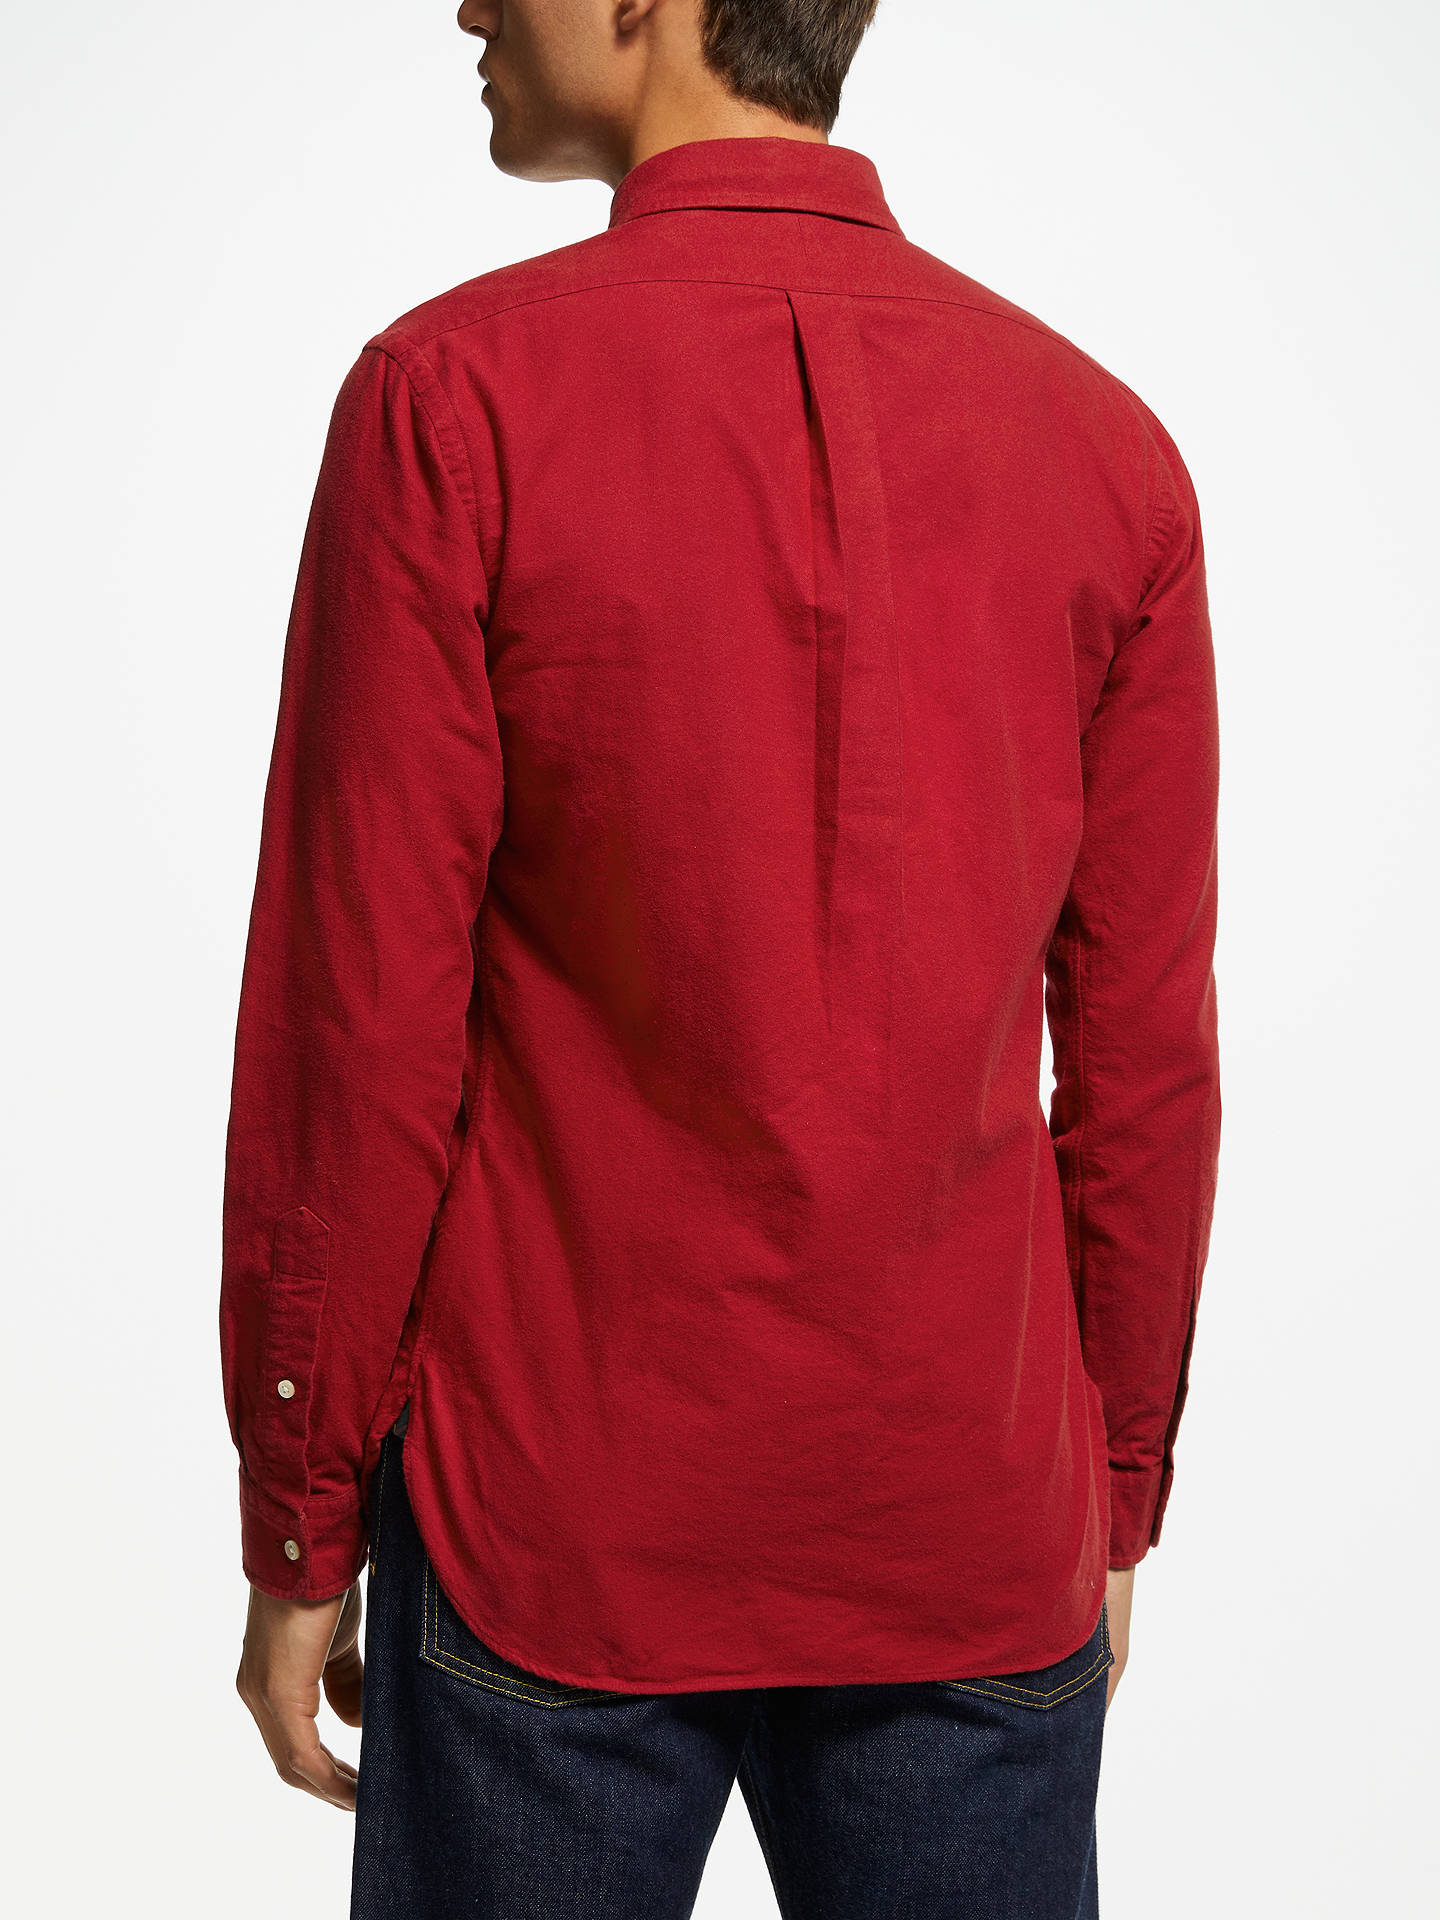 Buy Polo Ralph Lauren Brushed Cotton Shirt, Eaton Red, S Online at johnlewis.com